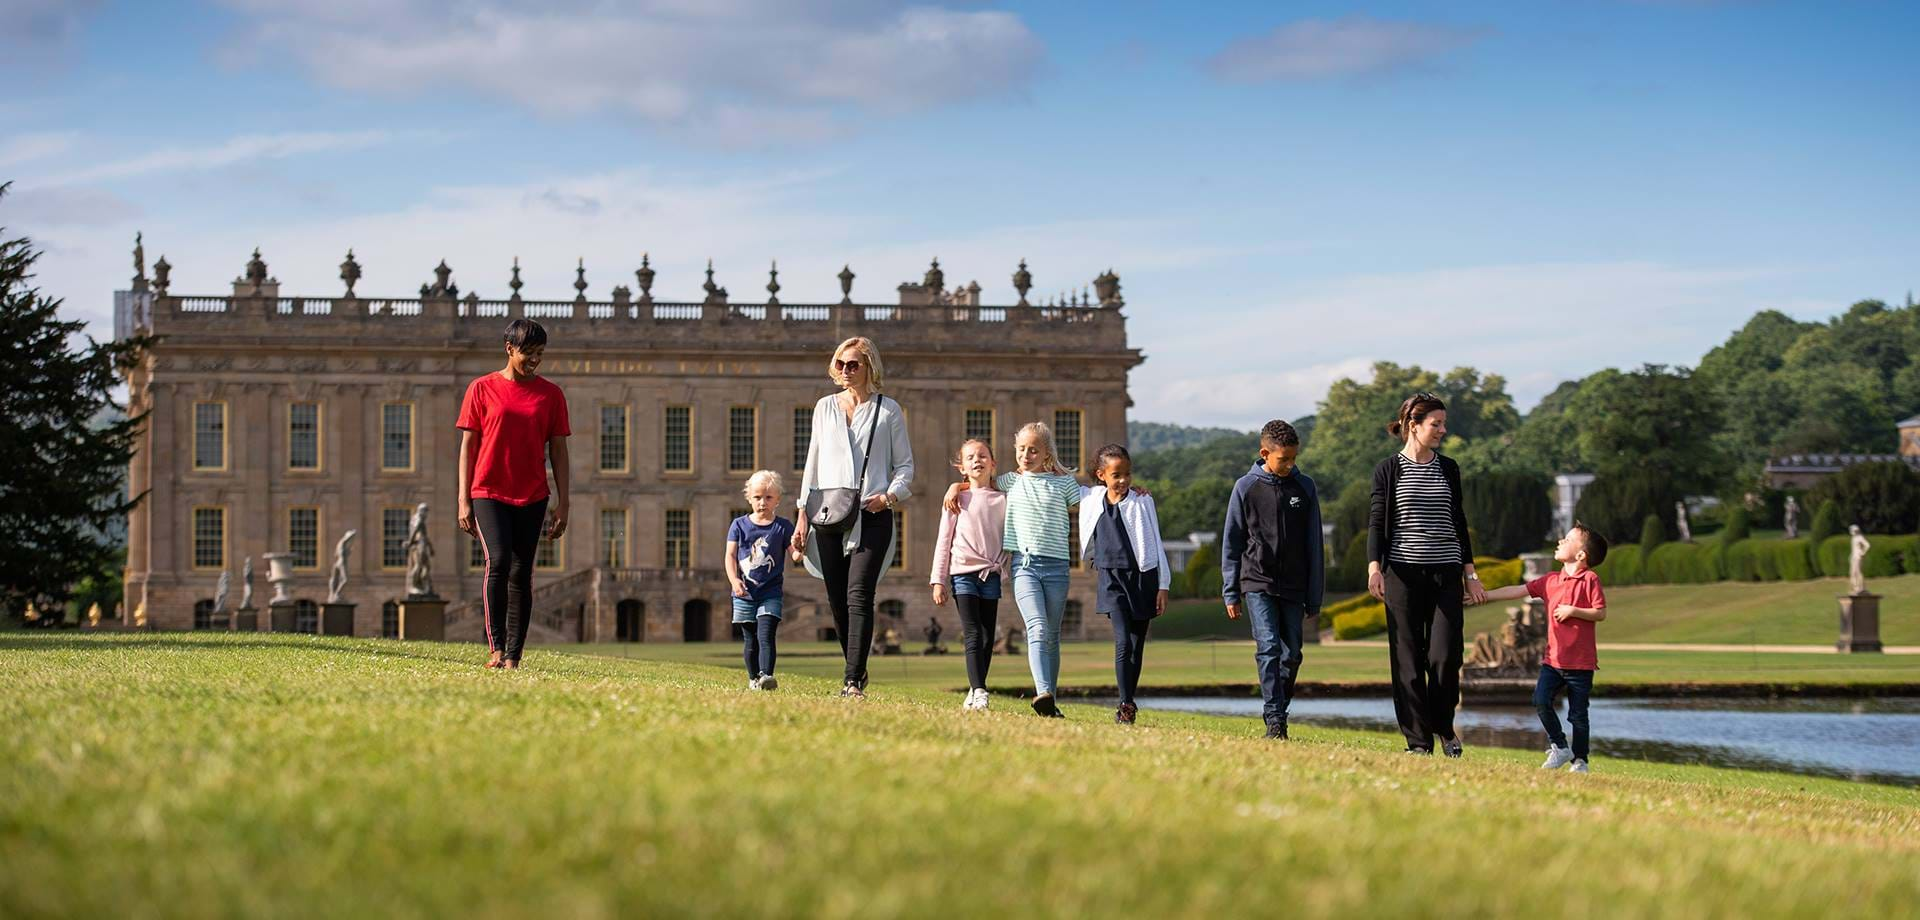 Summer at Chatsworth